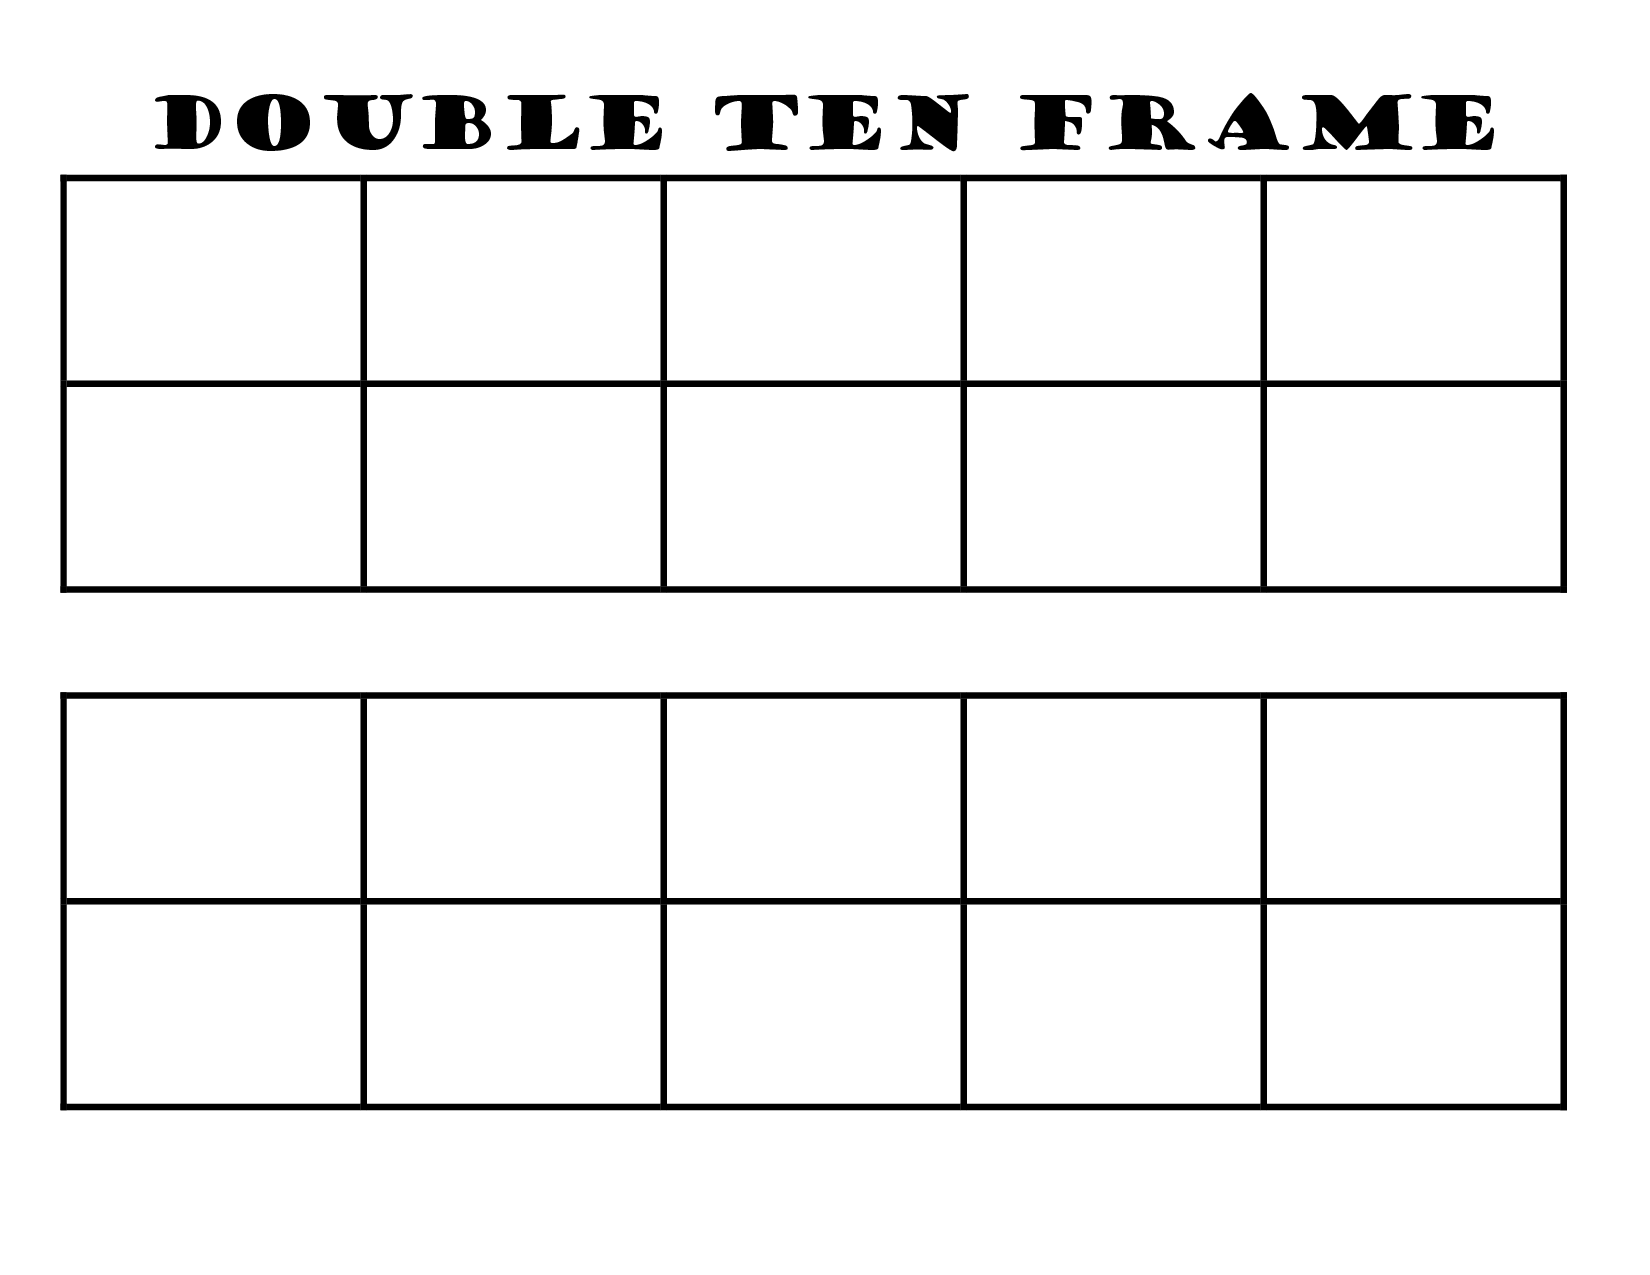 4 Best Images of Five Frame Template Printable - Blank Ten ...